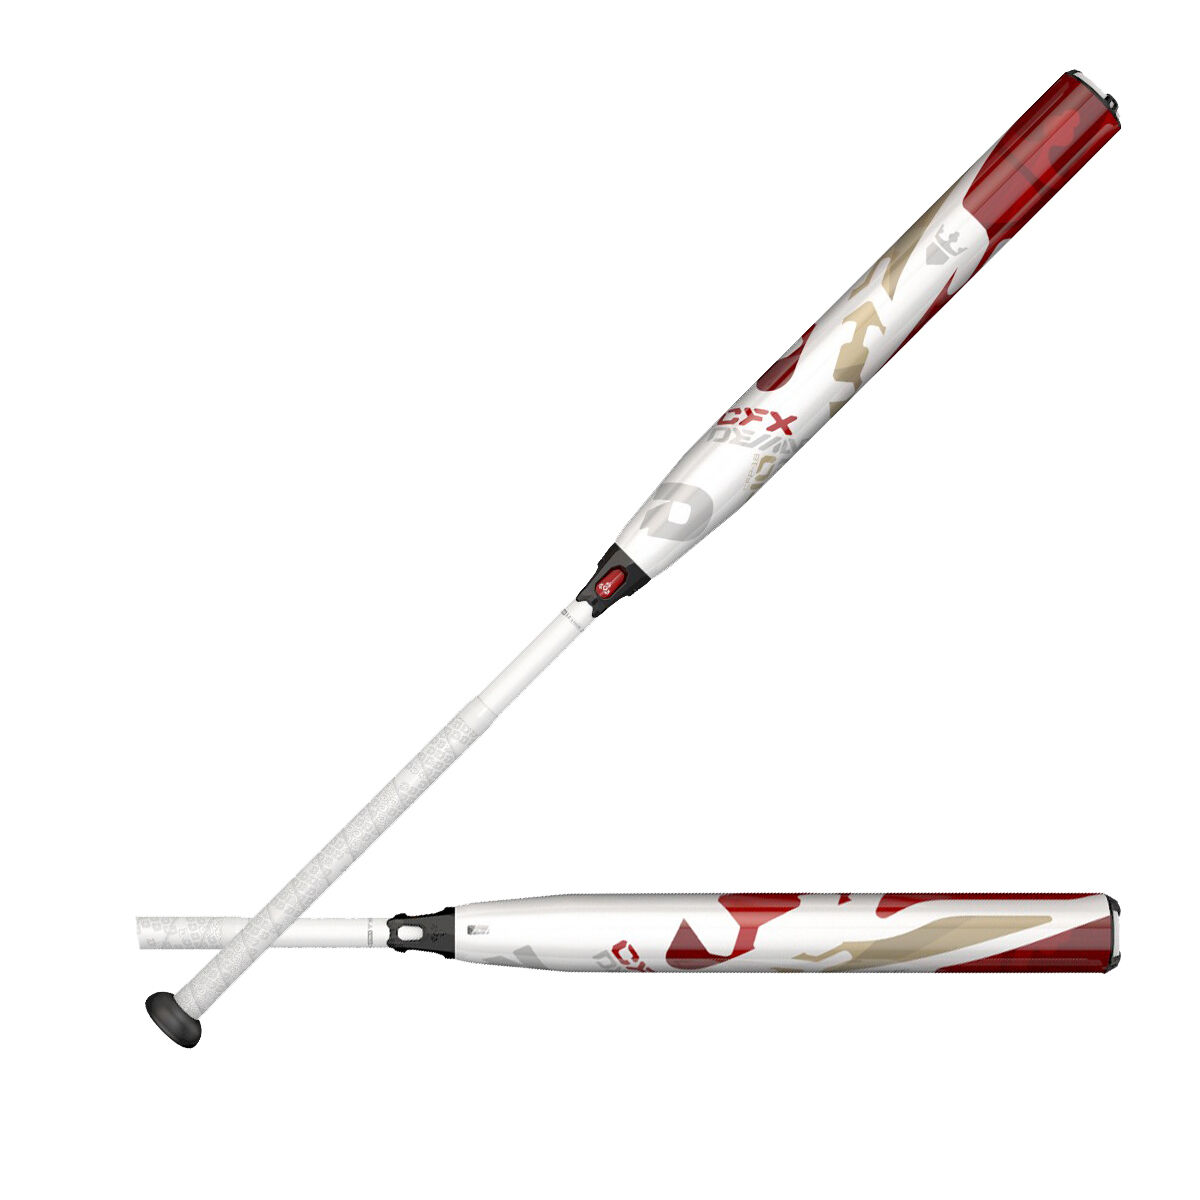 2018 DeMarini WTDXCFP CFX (-10) Fastpitch Bat - 33 23